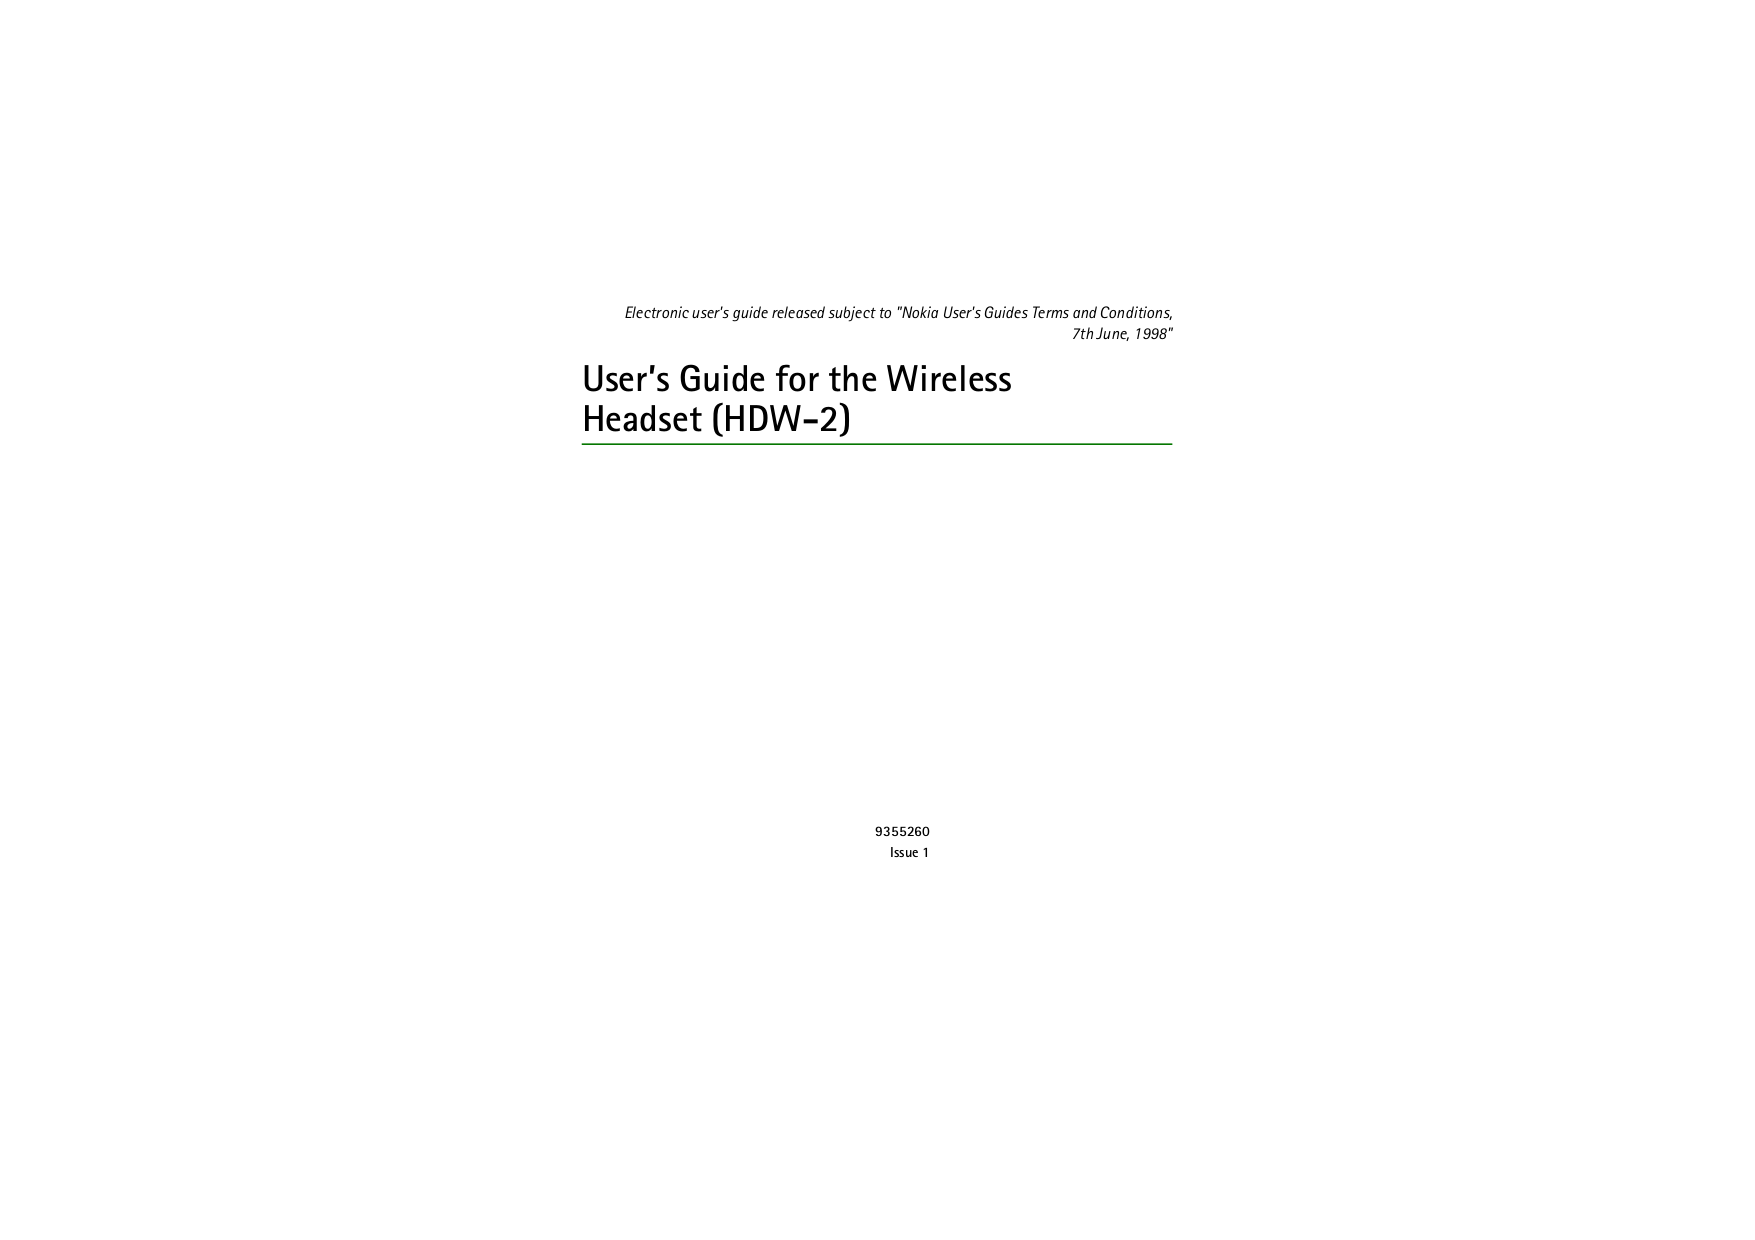 pdf for Nokia Headset HDW-3 manual